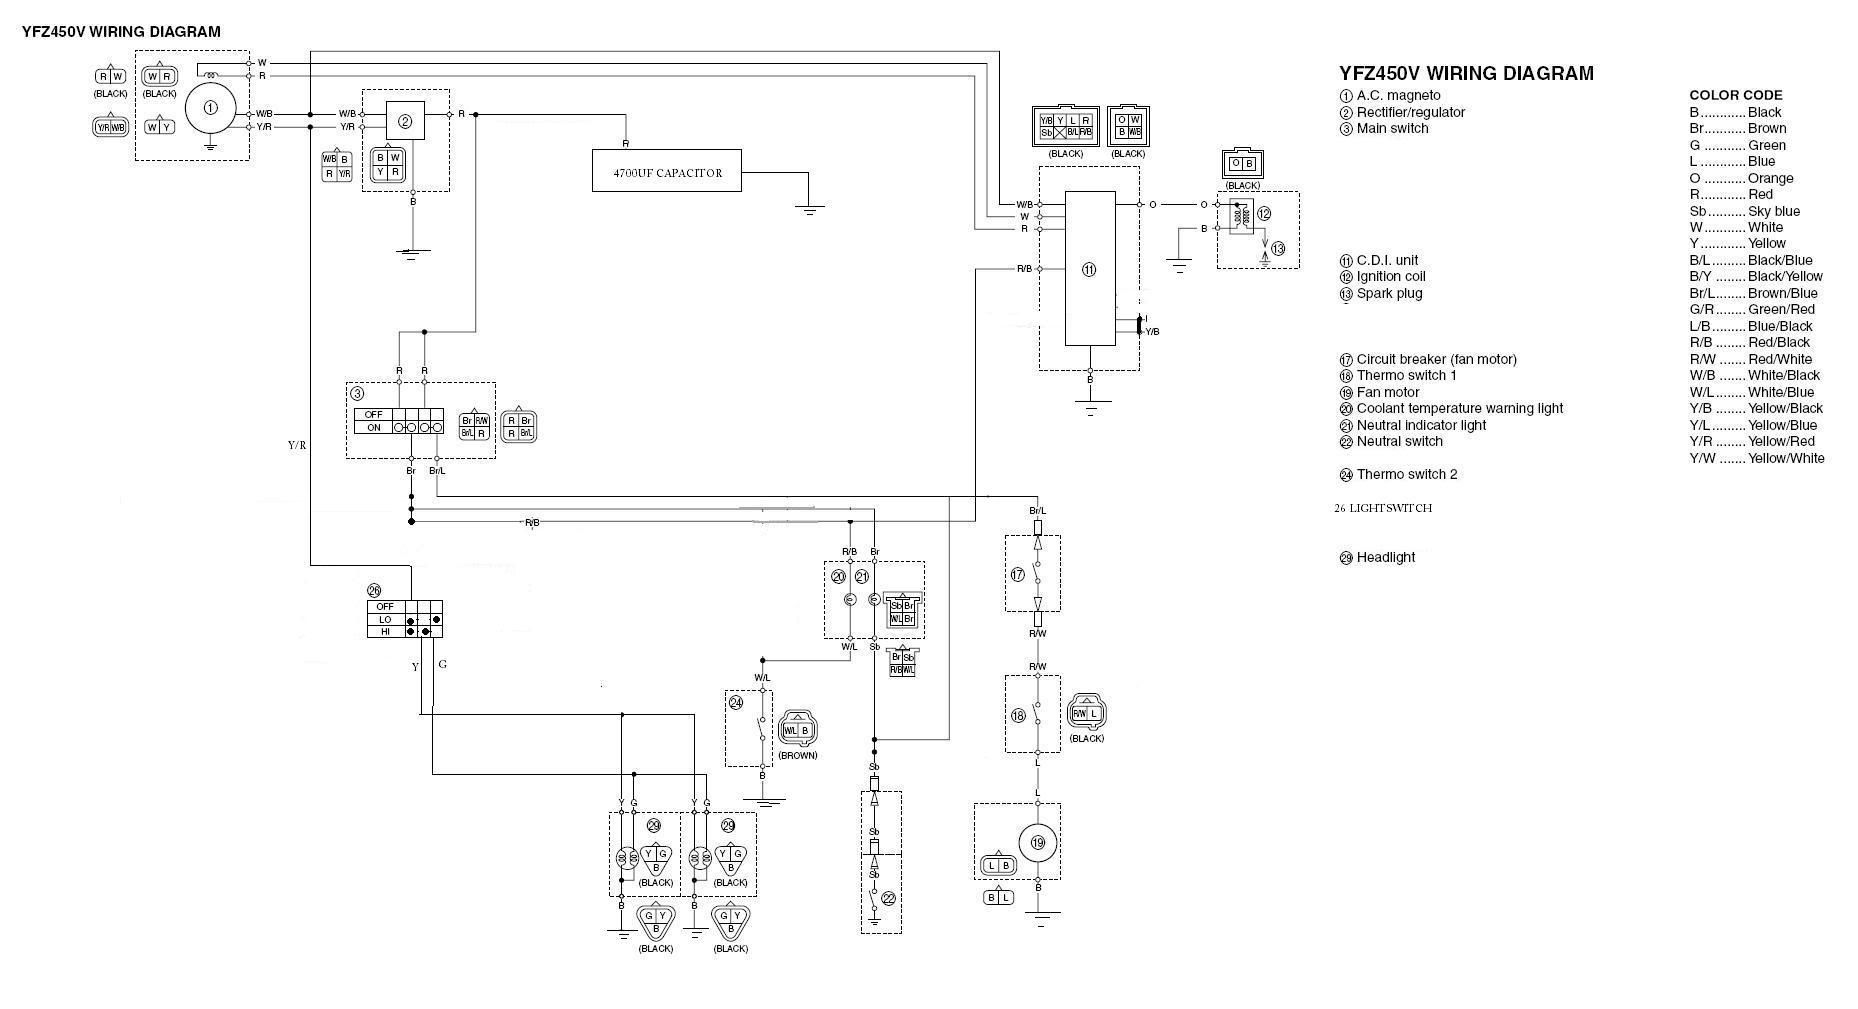 small resolution of gutted harness diagrams yamaha yfz450 forum yfz450r throughout 05 yamaha yfz 450 wiring harness